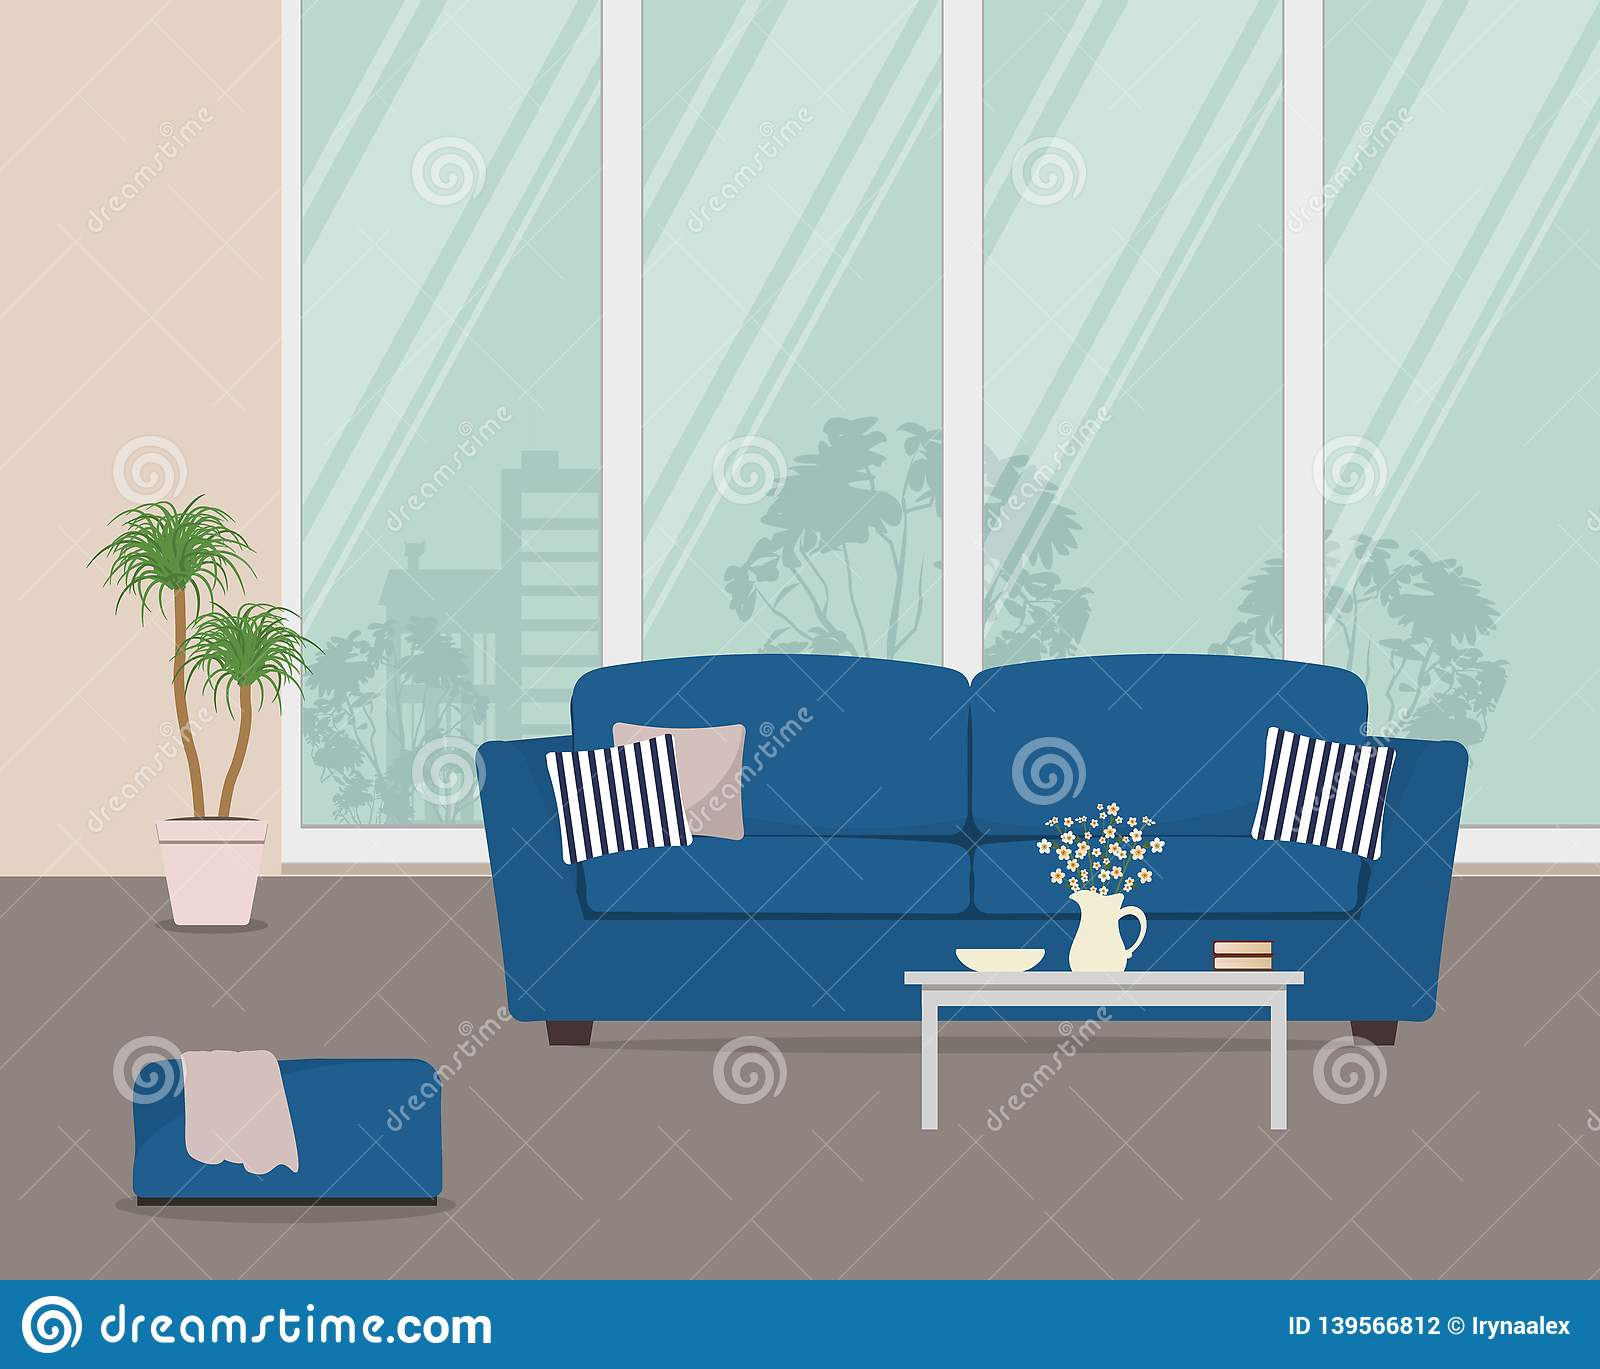 Stupendous Living Room With Blue Sofa And Pillows Stock Vector Ocoug Best Dining Table And Chair Ideas Images Ocougorg